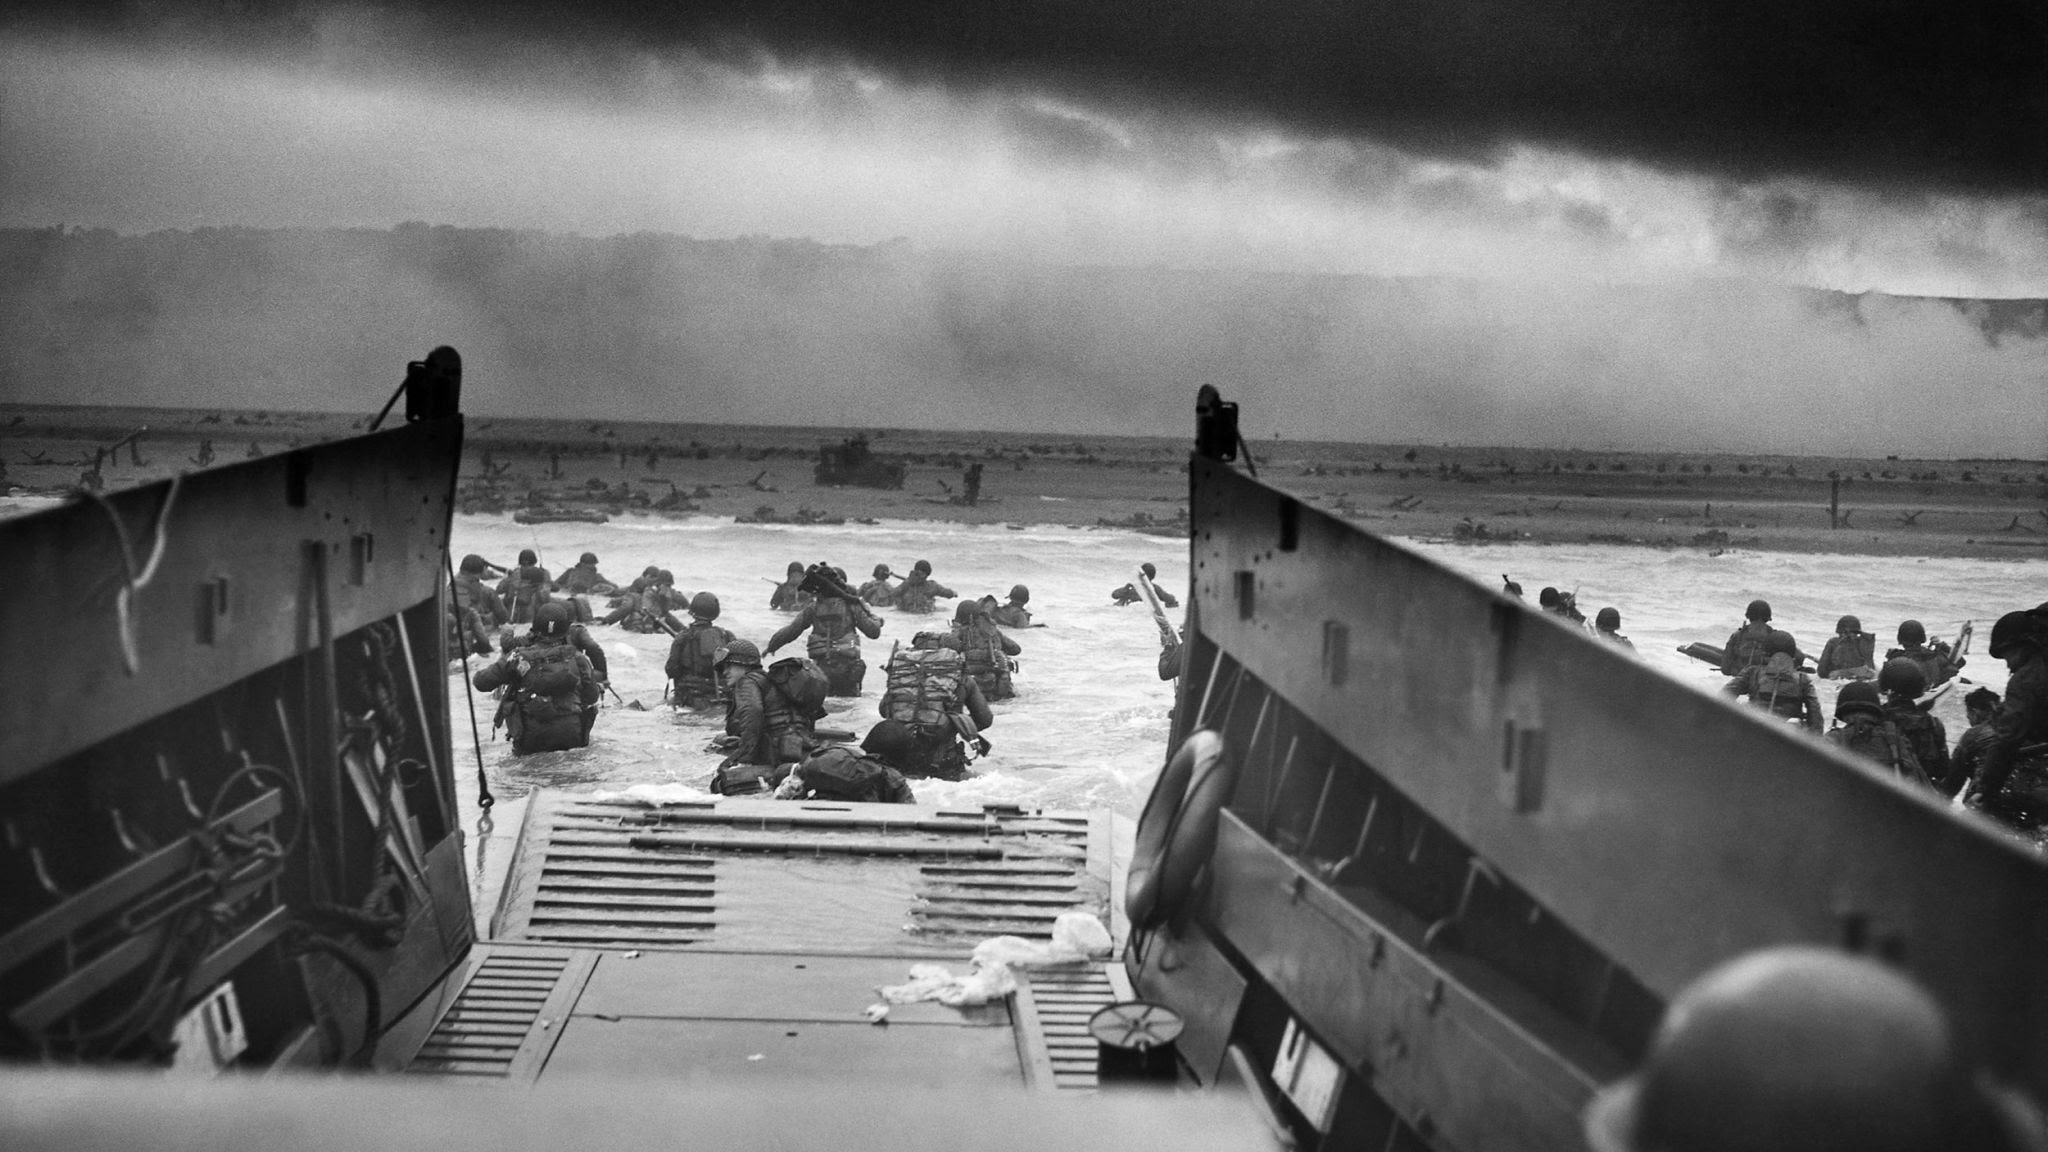 D-Day 1944 Planning Operation Overlord World War II